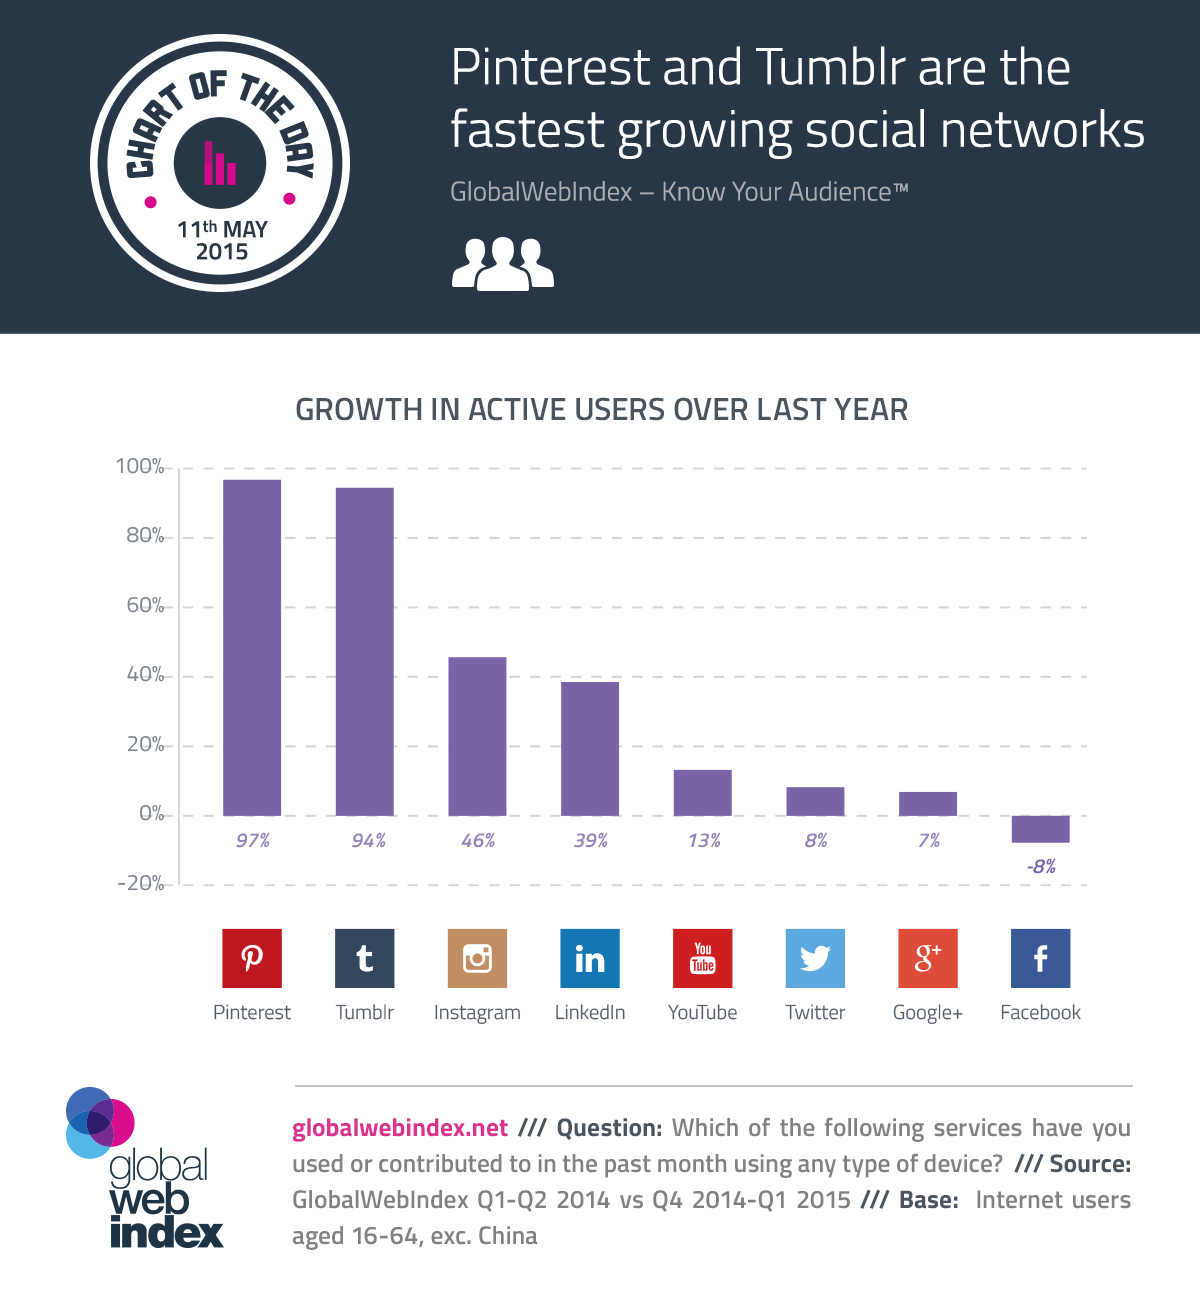 Q1 2015: Pinterest and Tumblr are the fastest growing social networks -  #infographic